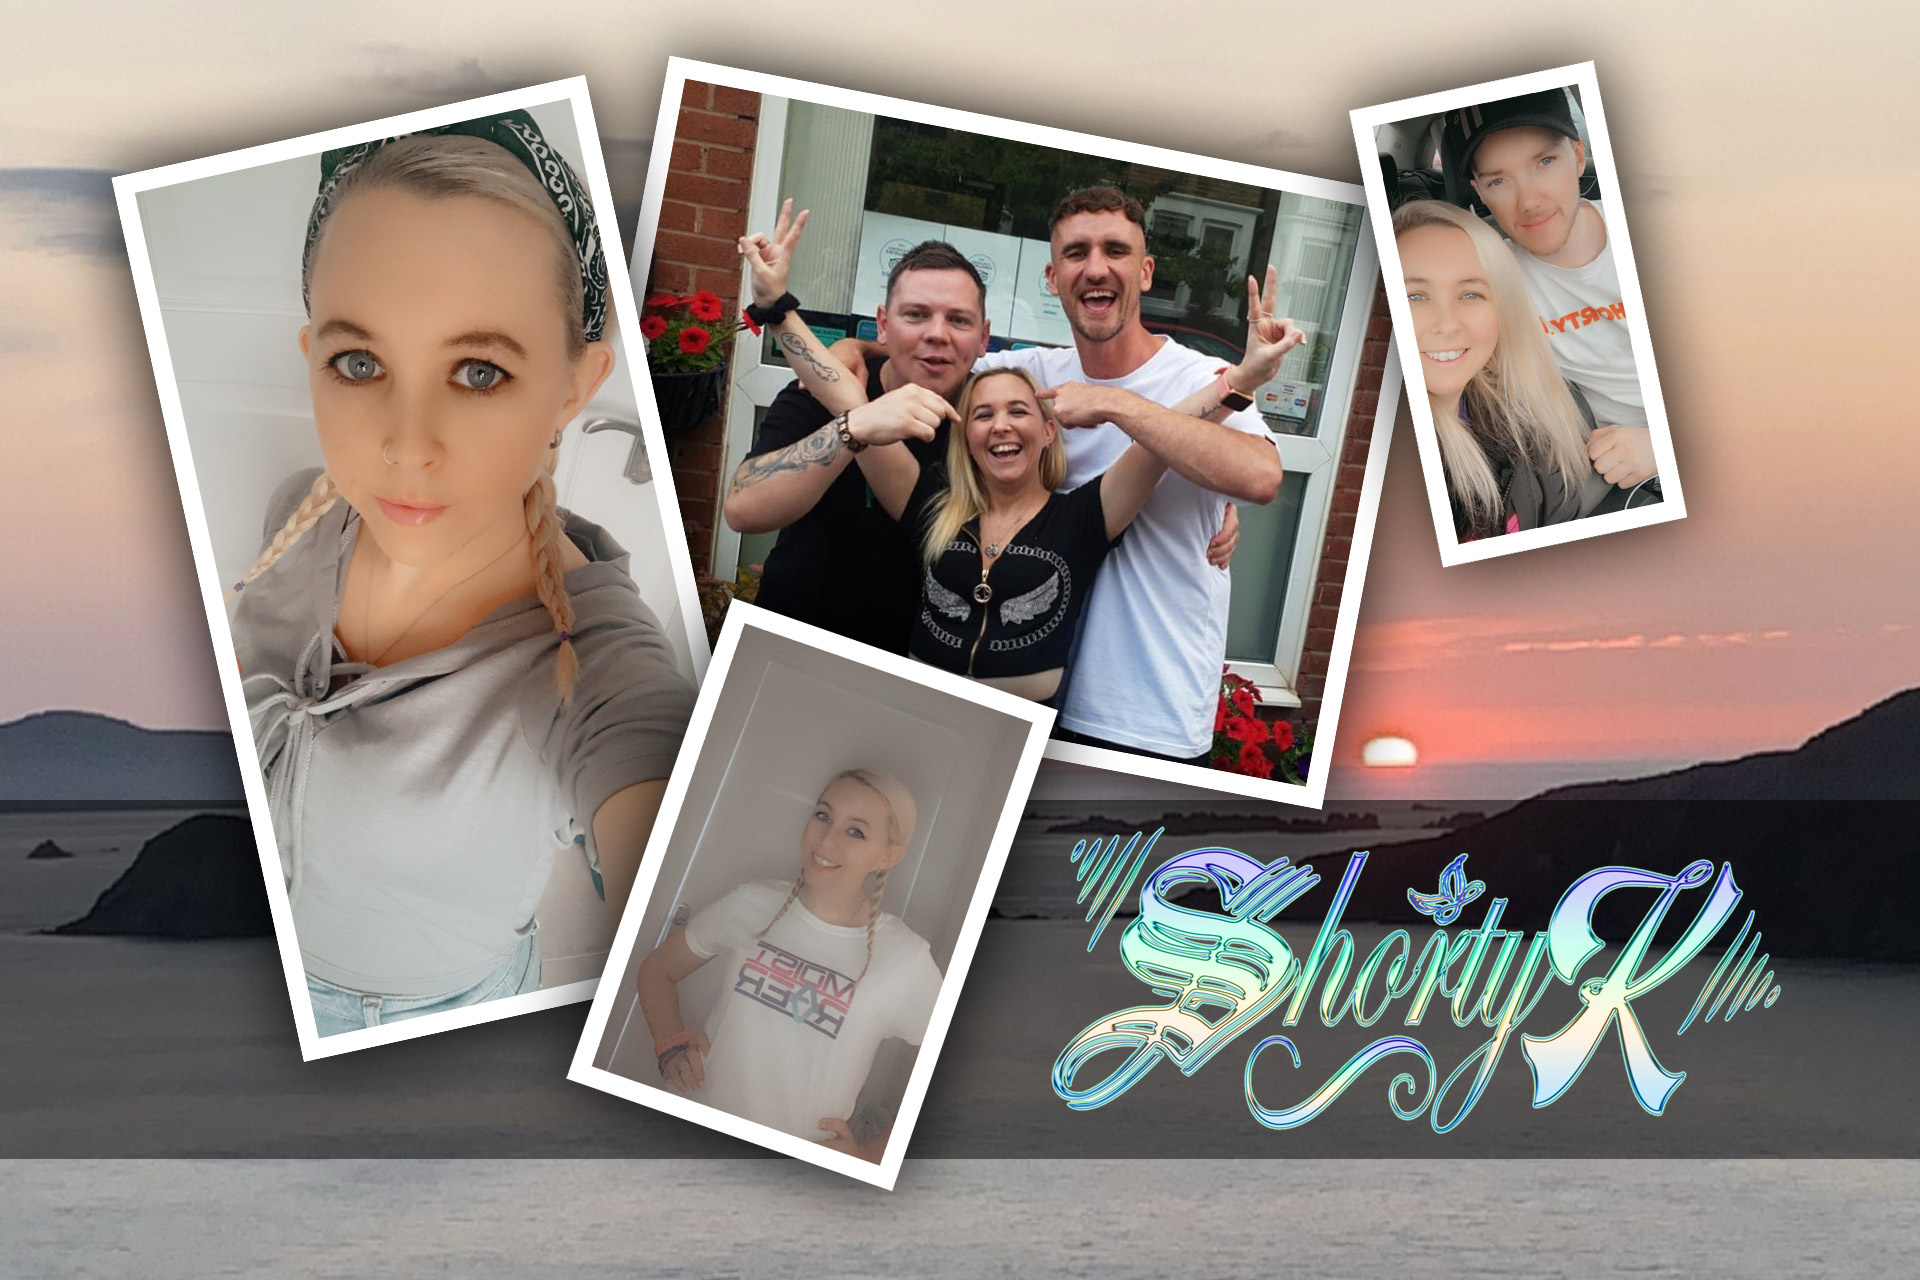 DJ Shorty K - Living Proof that you can Follow your Dreams and Misbehave All at Once